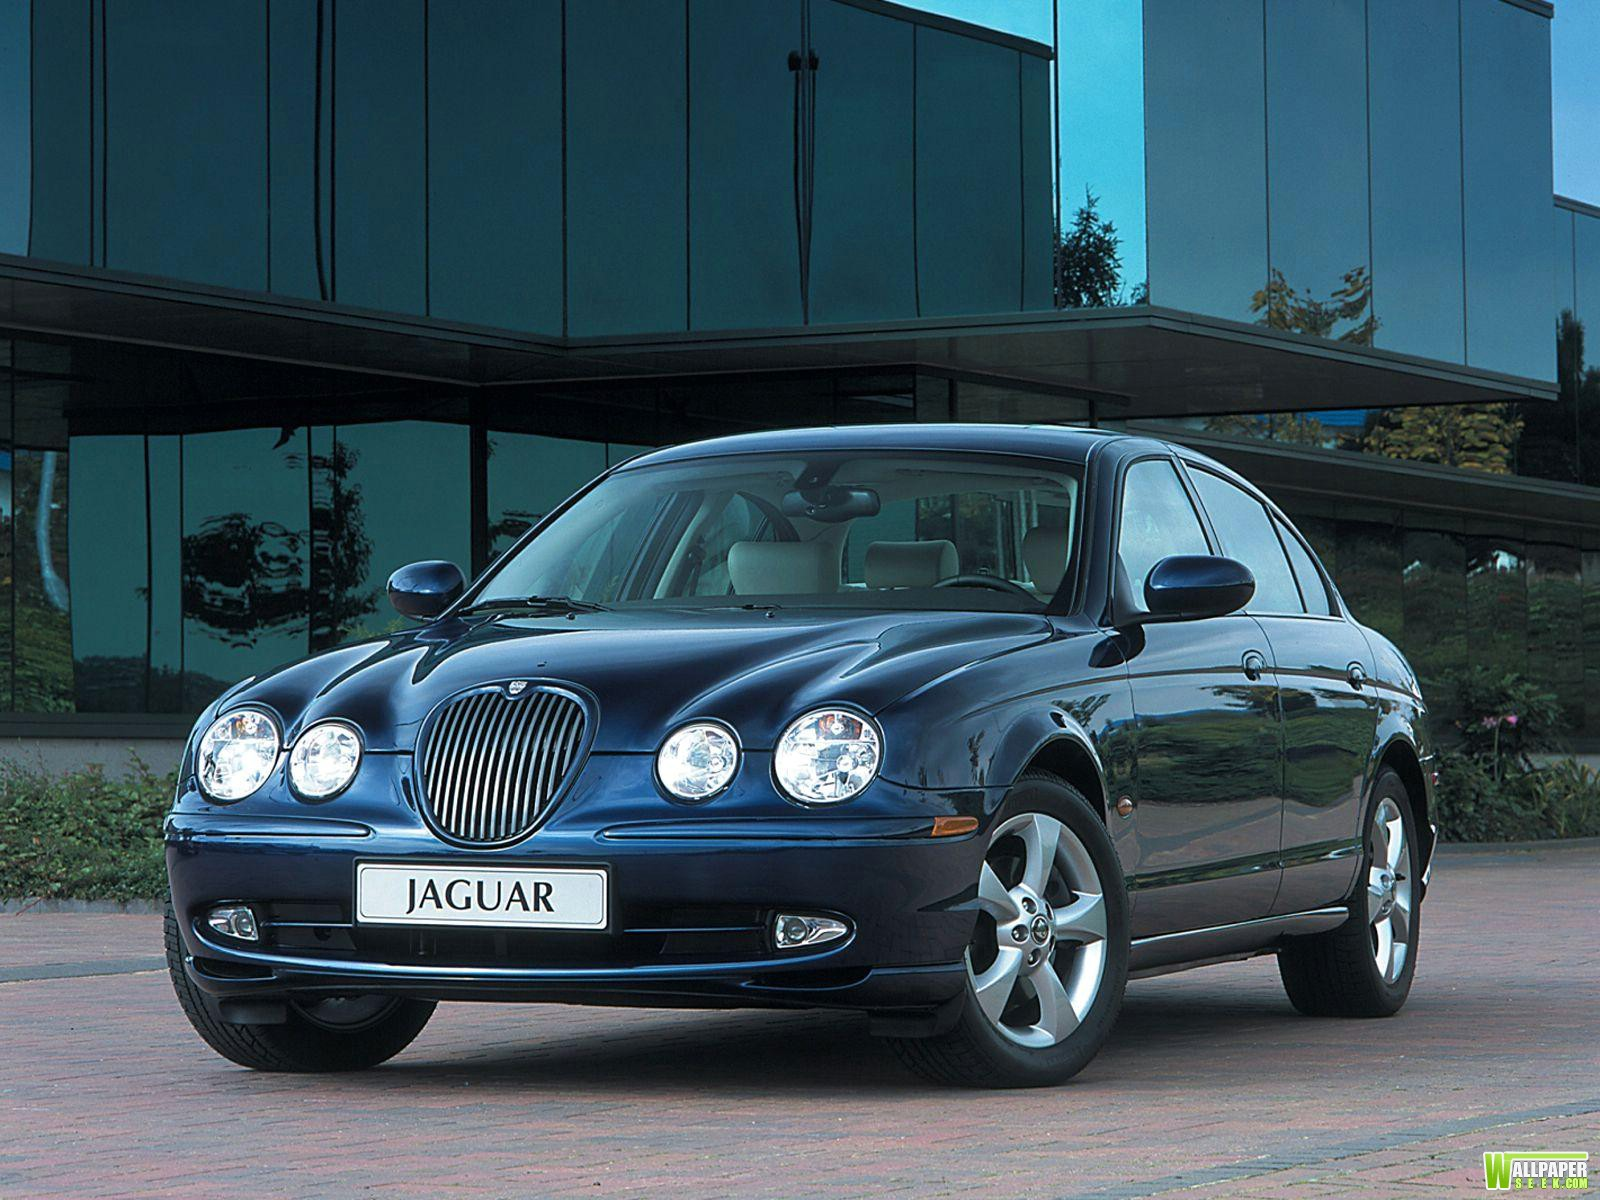 Jaguar Cars Images Hd